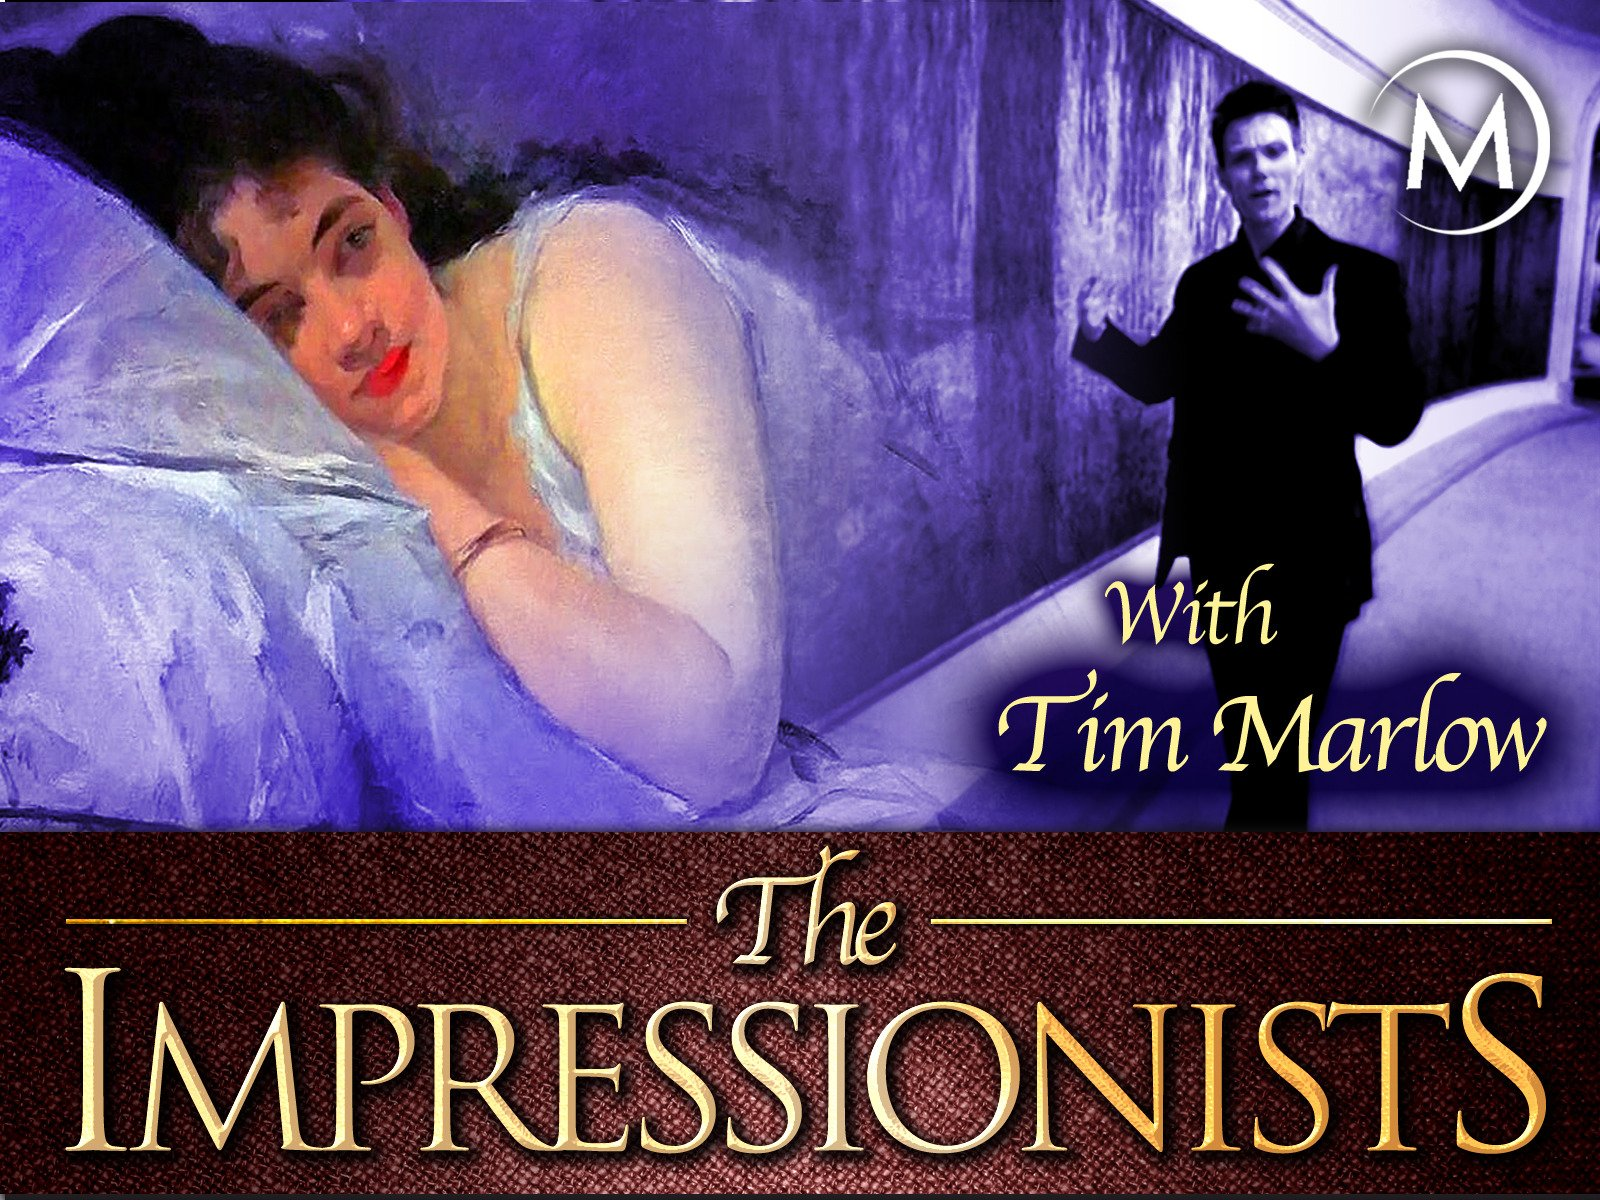 The Impressionists with Tim Marlow - Season 1